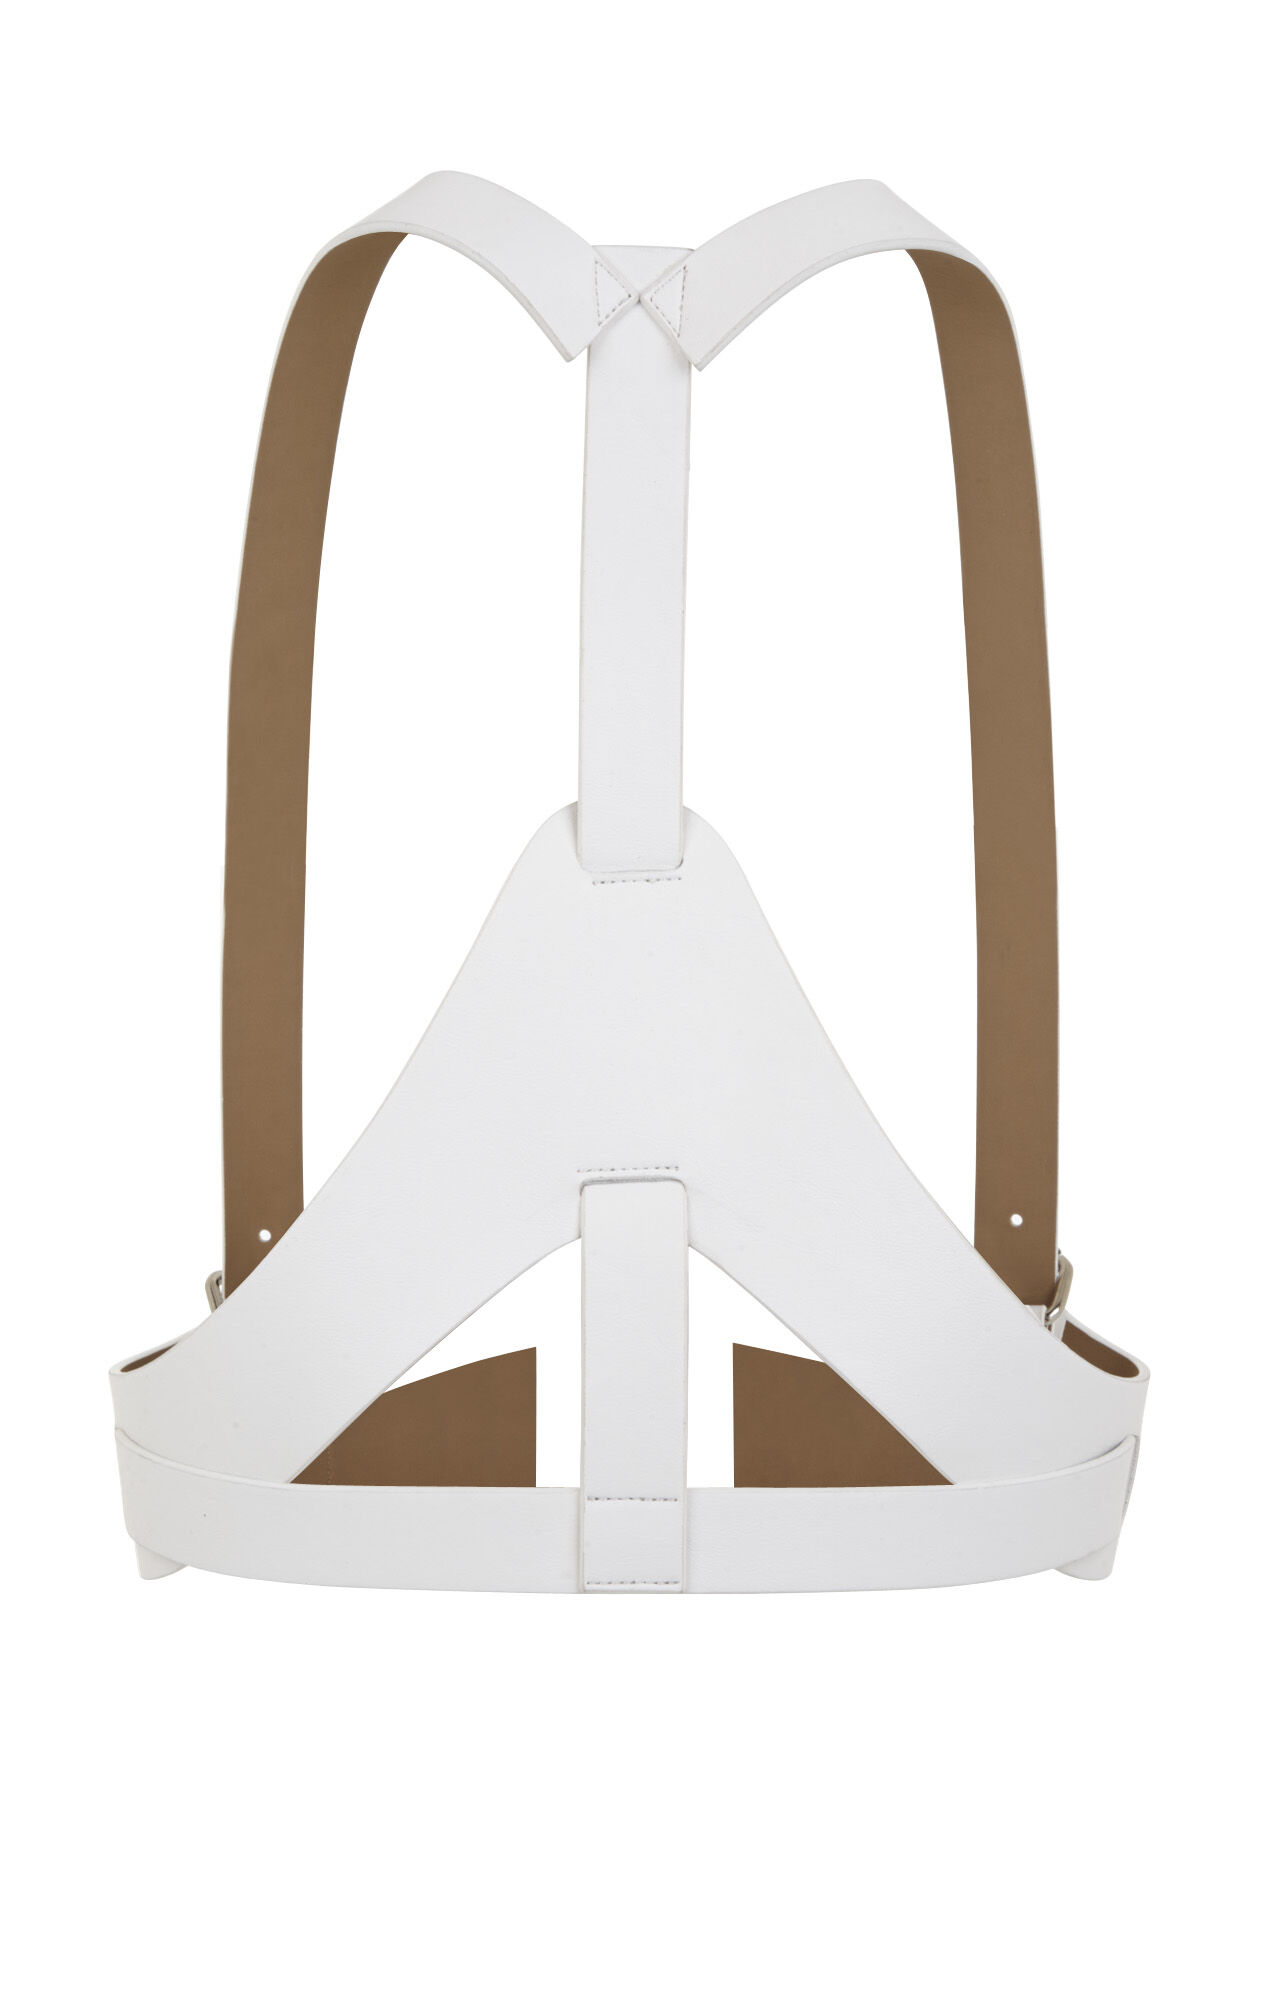 Day Y-Shaped Harness